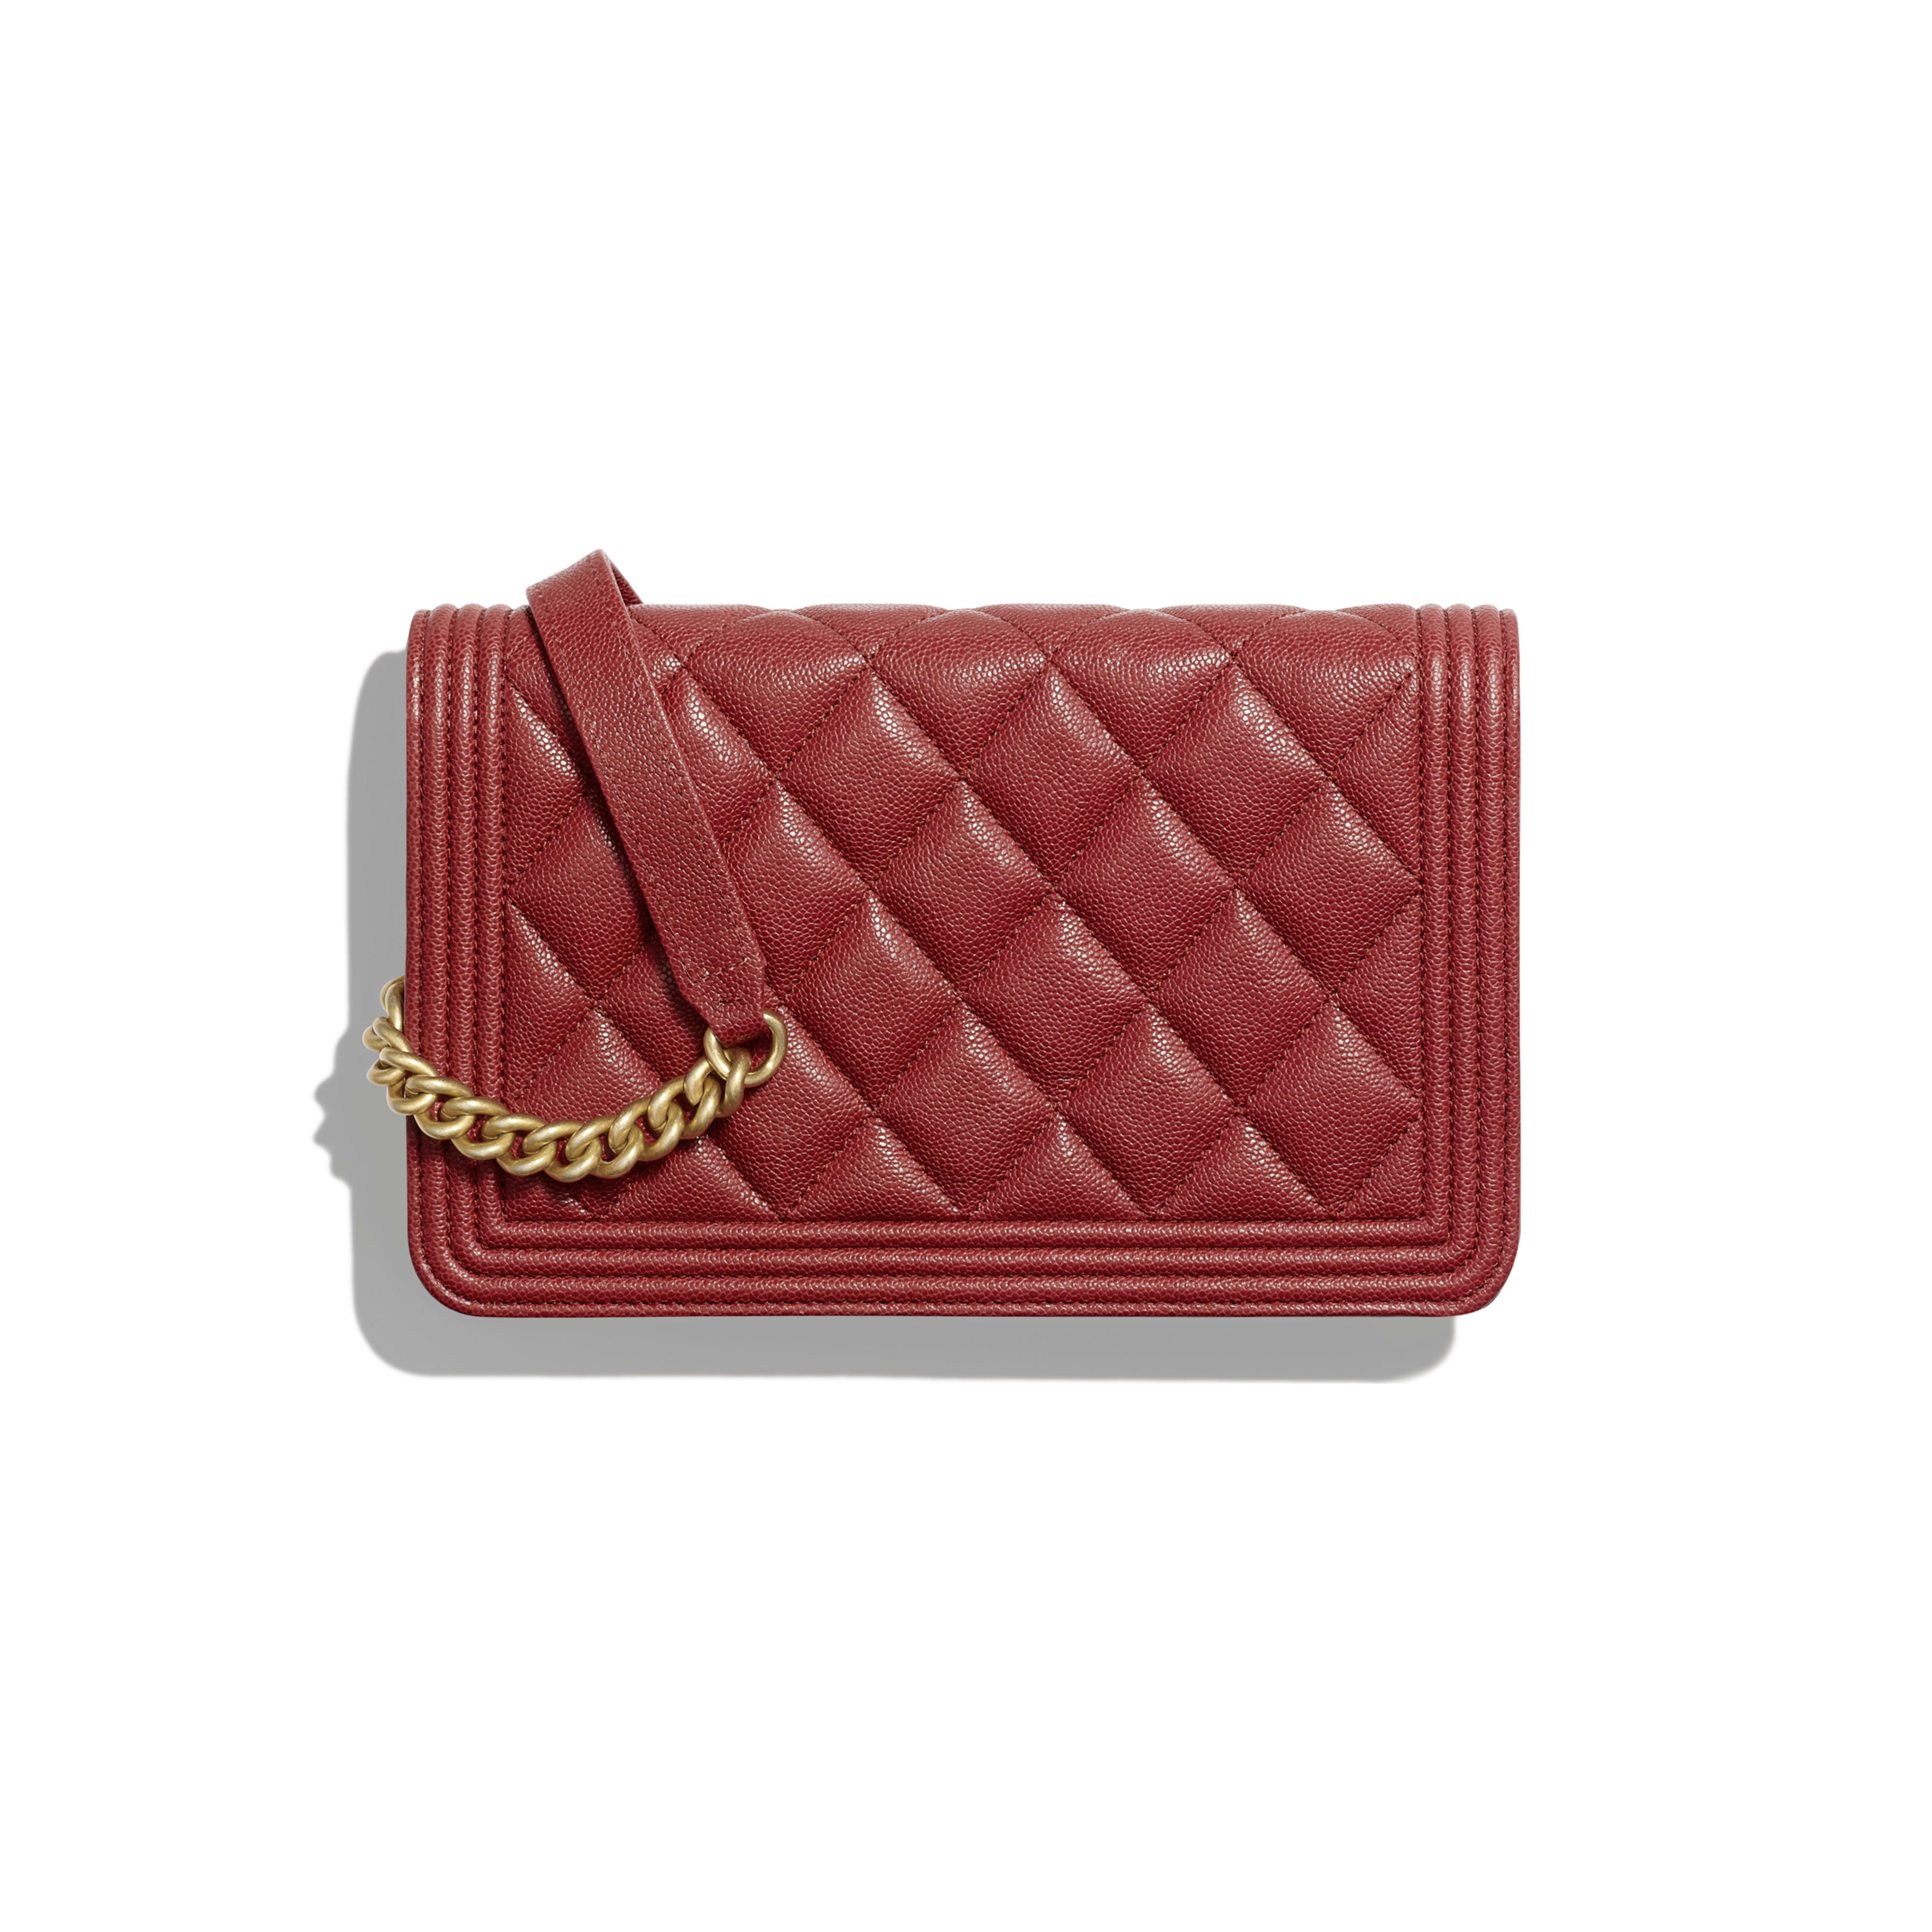 BOY CHANEL Wallet on Chain - Red - Grained Calfskin & Gold-Tone Metal - Alternative view - see full sized version